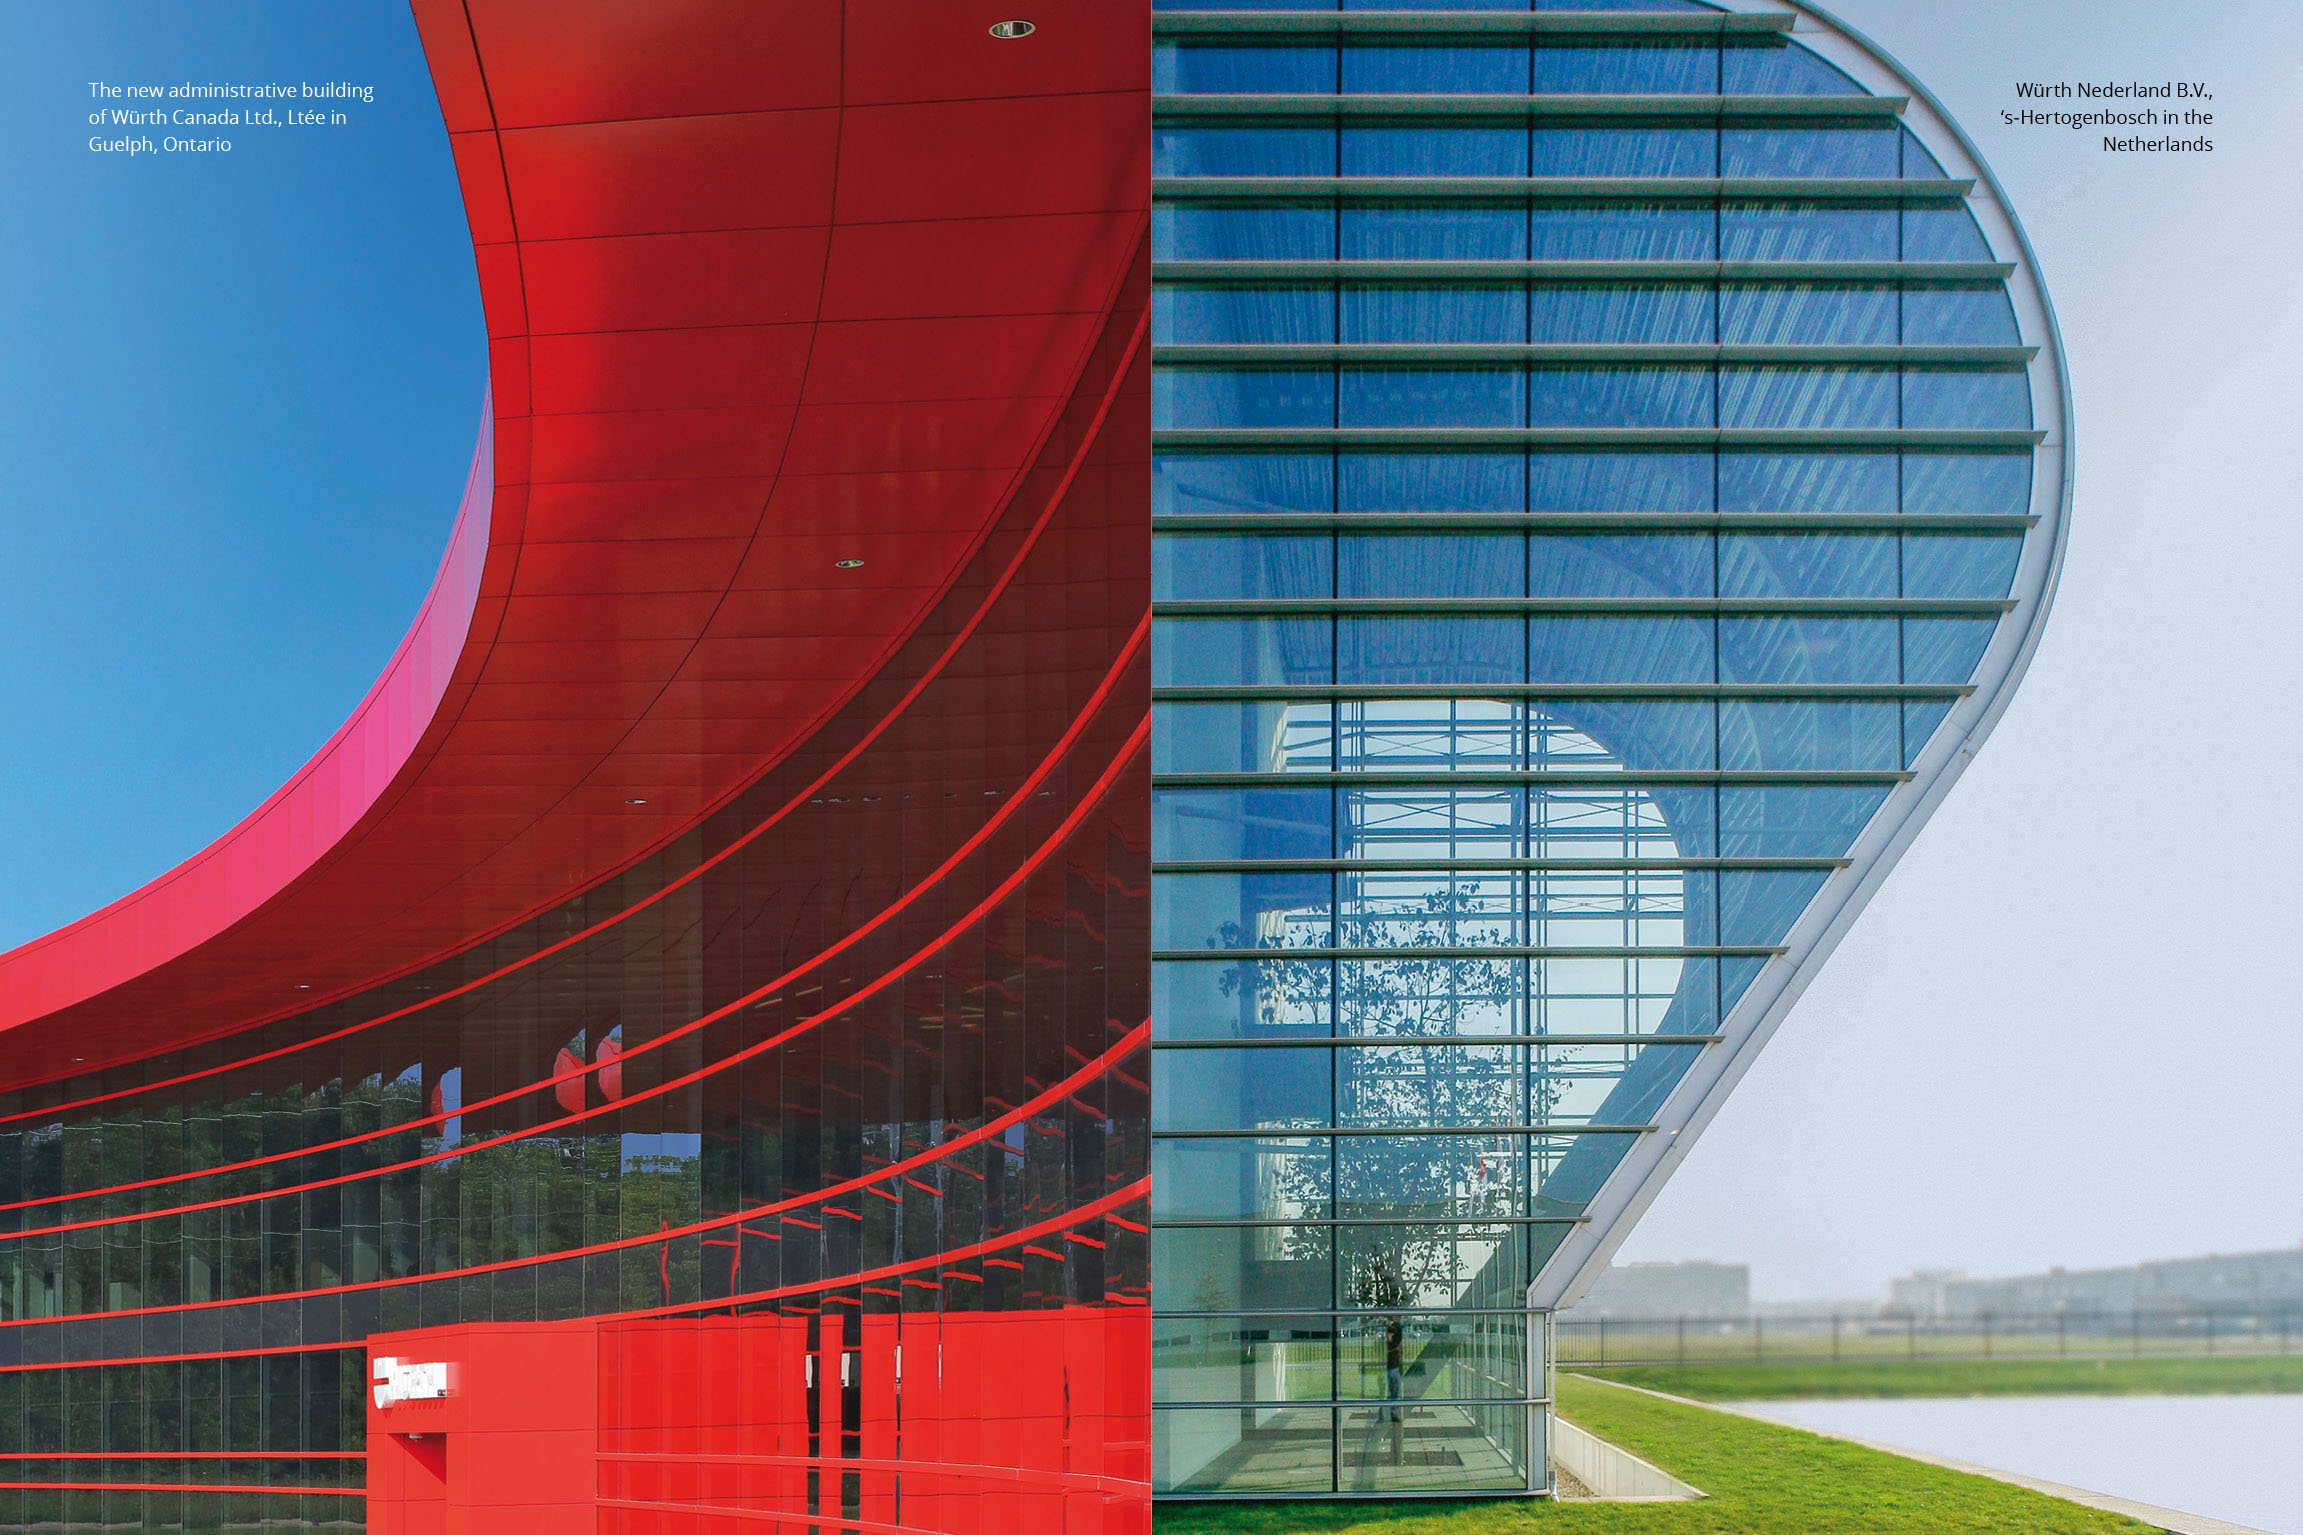 In 1962, Reinhold Würth set up the first company outside of Germany, in the Netherlands. In 1987, 25 years later, Würth was already represented on all five continents. The solidarity between all Würth subsidiaries is reflected in its architecture: The inviting and communicative design bathed in light transports the corporate culture across borders.